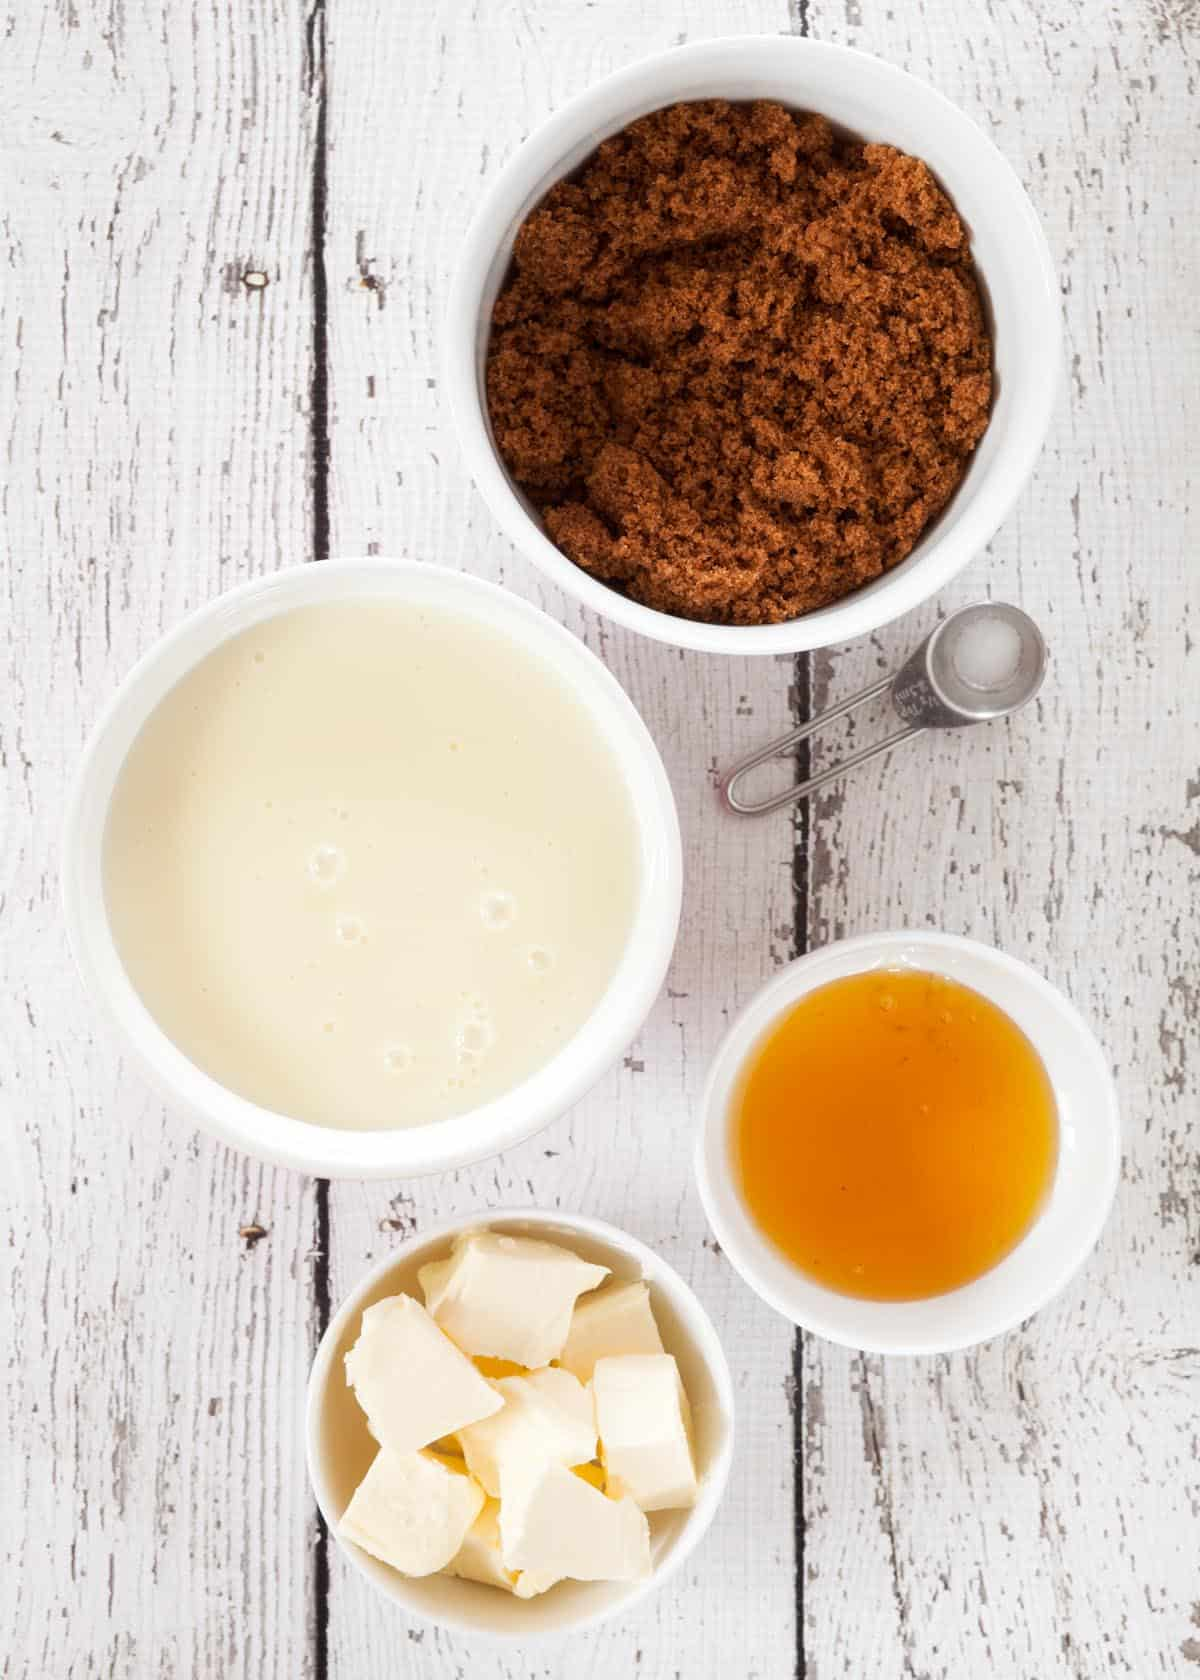 Ingredients for caramel in bowls: condensed milk, golden syrup, butter and brown sugar